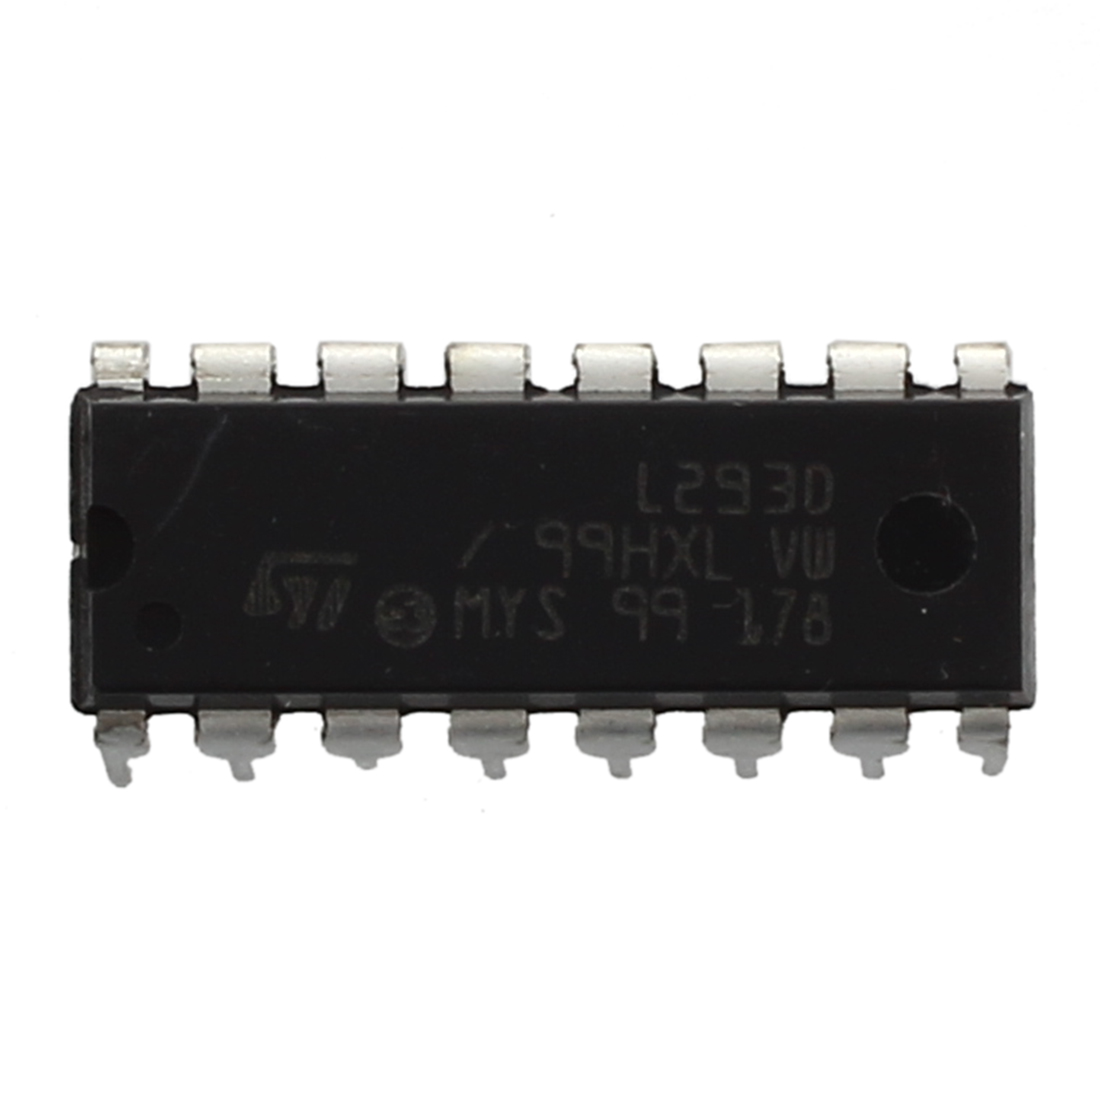 10 x L293D Stepping Motor Driver